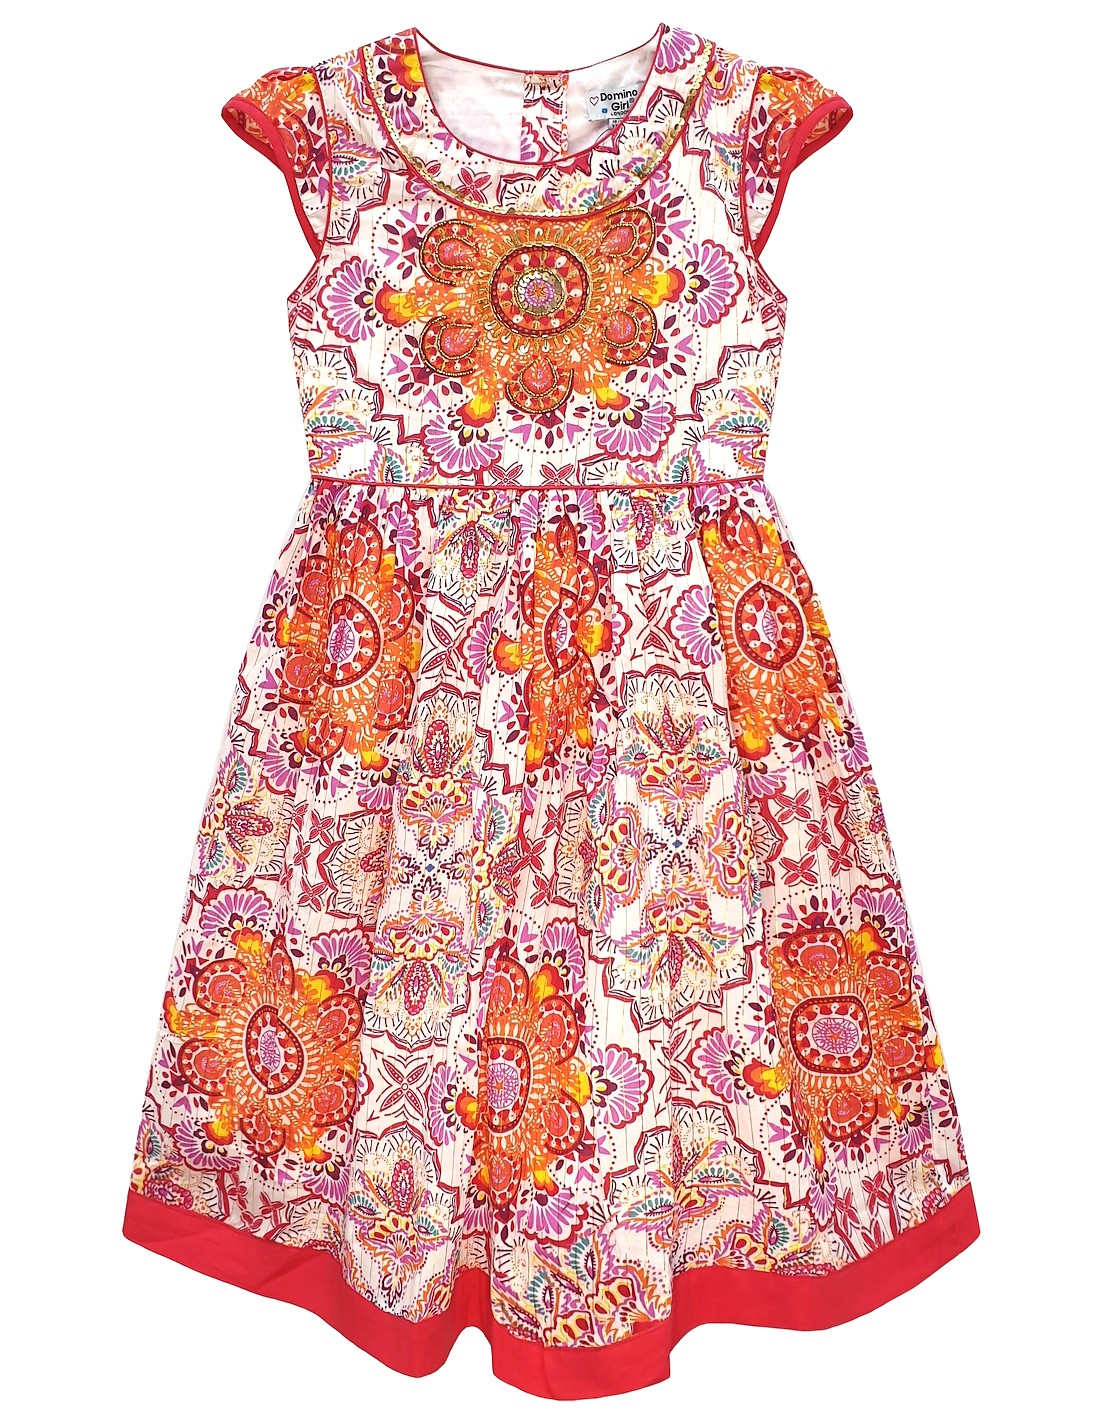 Domino Girl/'s 100/% cotton Cleopatra Embroidered /& Sequin Sun Dress 3 to 11 Years